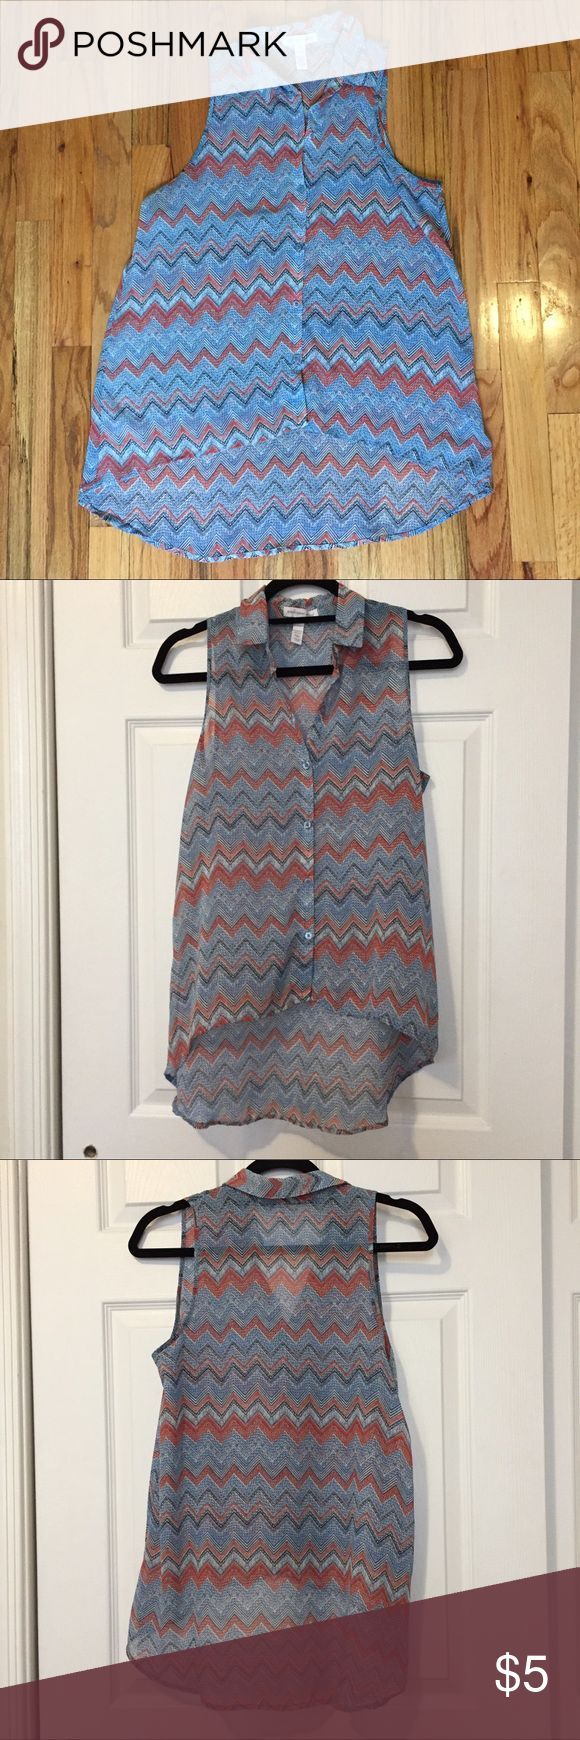 Chevron Blue and Coral Sleeveless Tank EUC, high-low button up chevron top Ambiance Apparel Tops Button Down Shirts